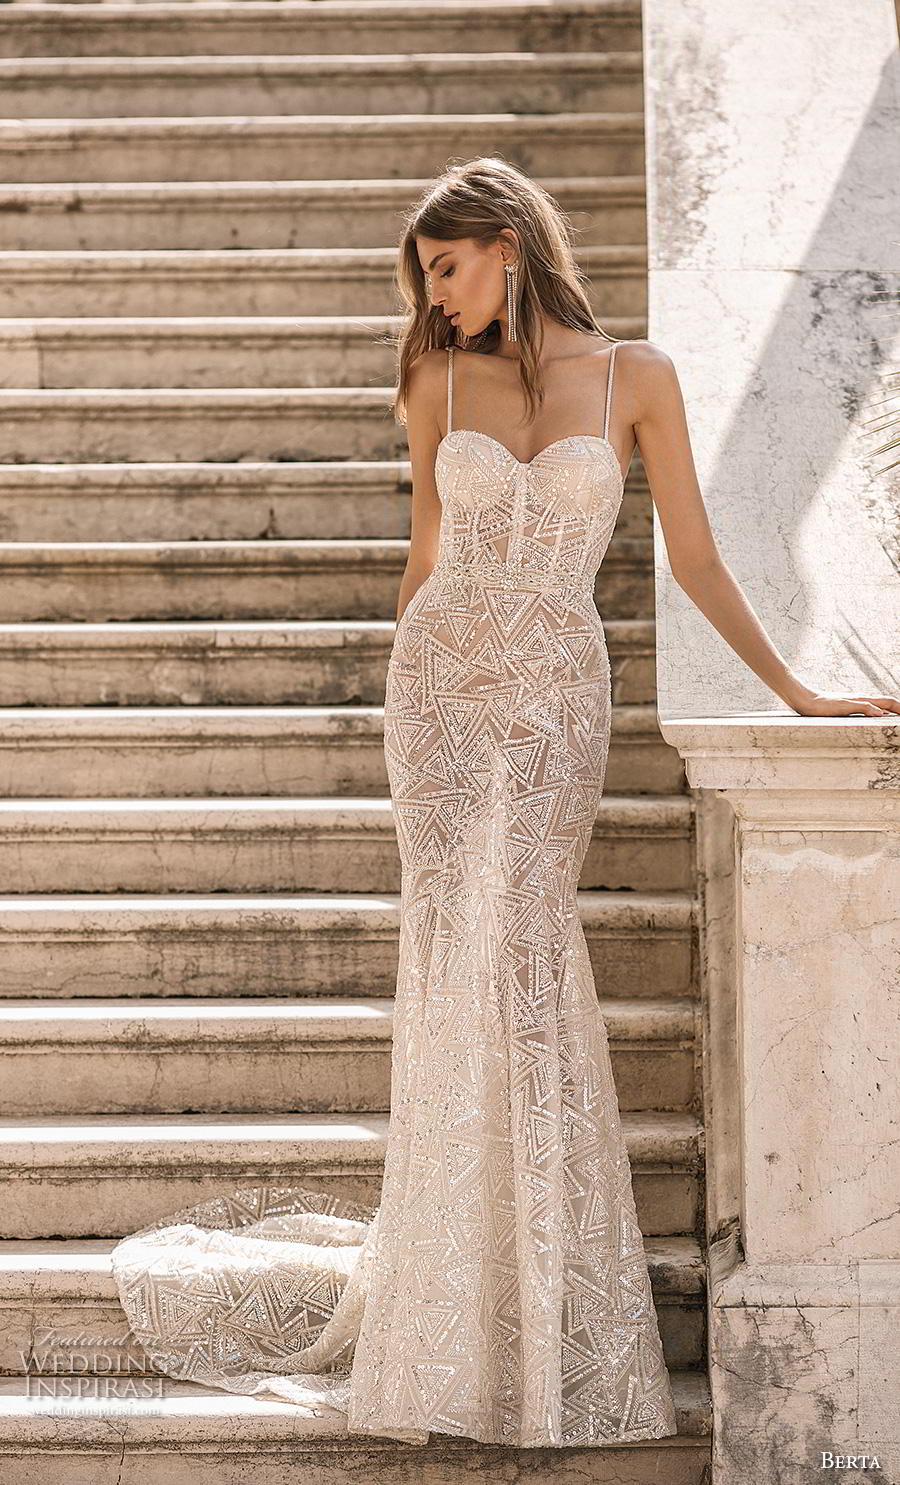 berta 2019 privee bridal thin strap sweetheart neckline full embellishment bustier glitzy glamorous elegant sheath wedding dress backless chapel train (8) mv